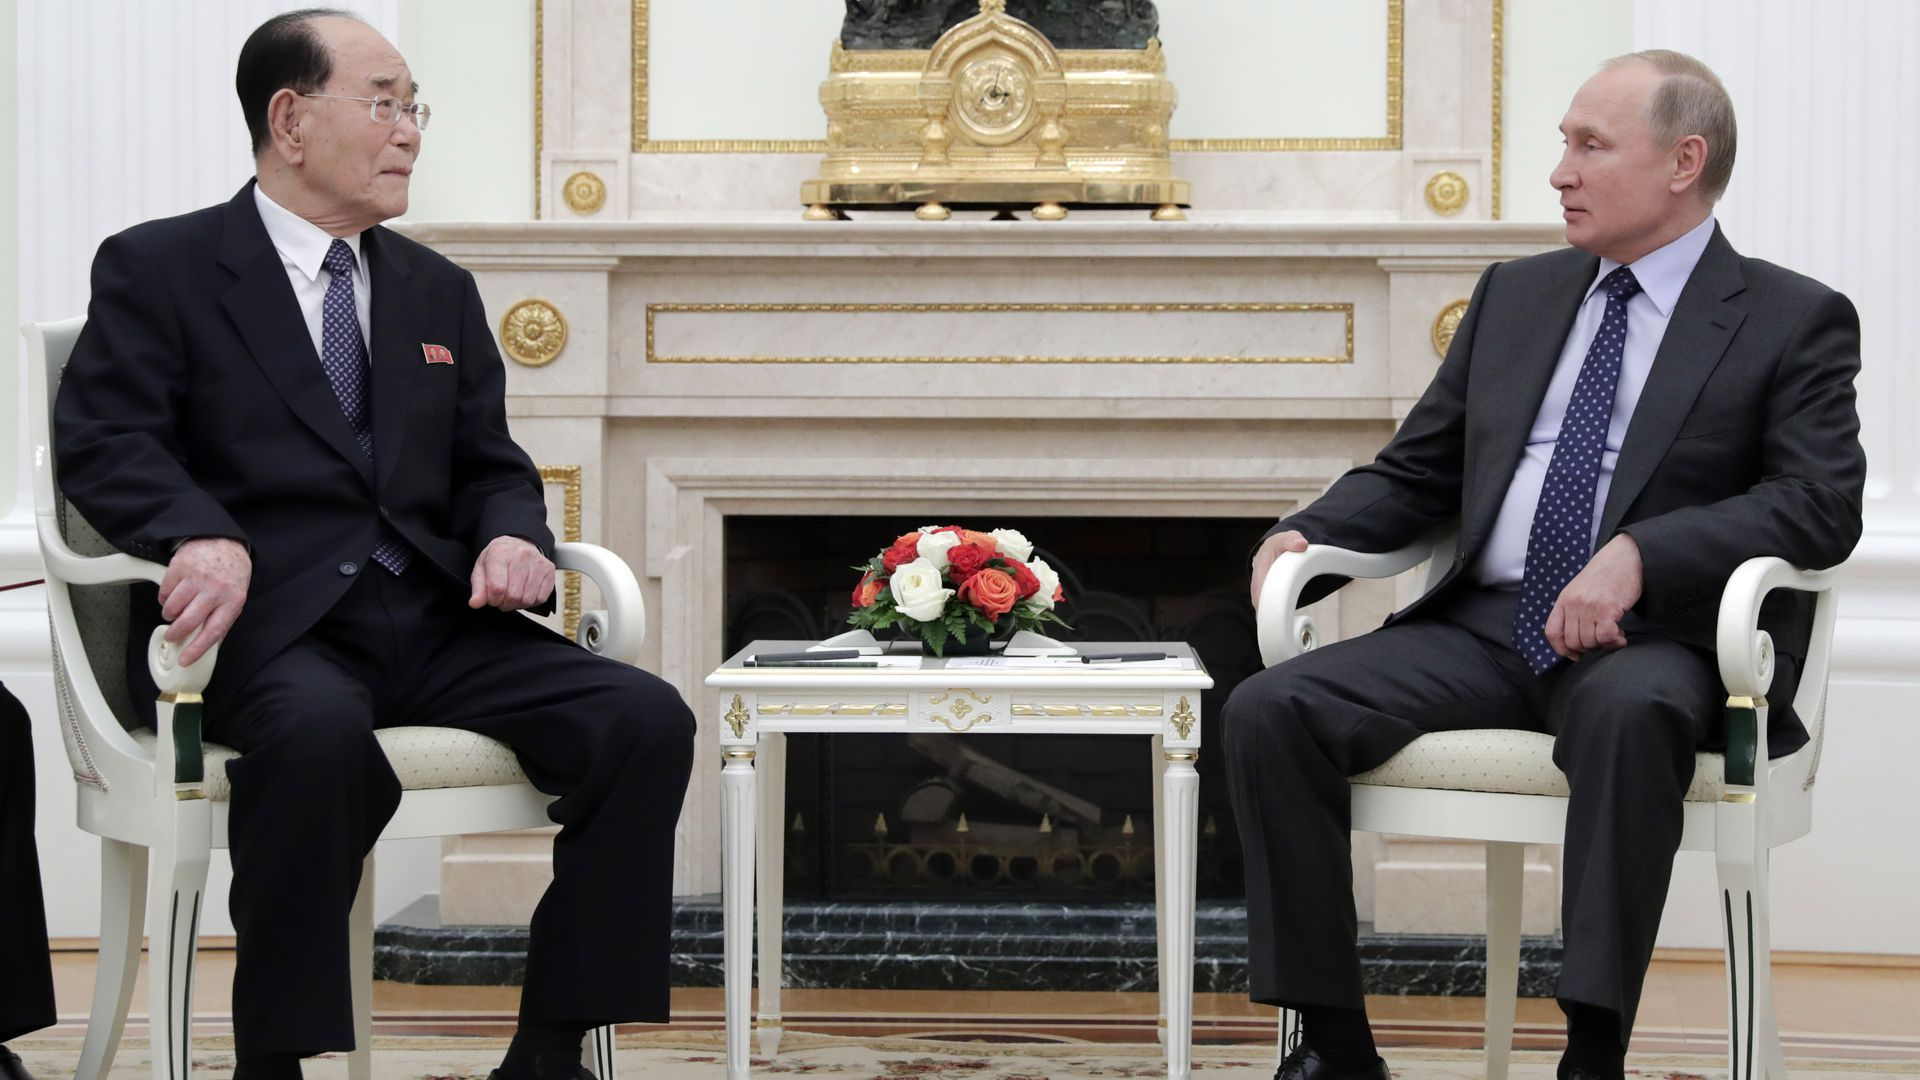 Kim Yong-nam, president of the Presidium of Supreme People's Assembly of North Korea, sits to the left of Russian President Vladimir Putin